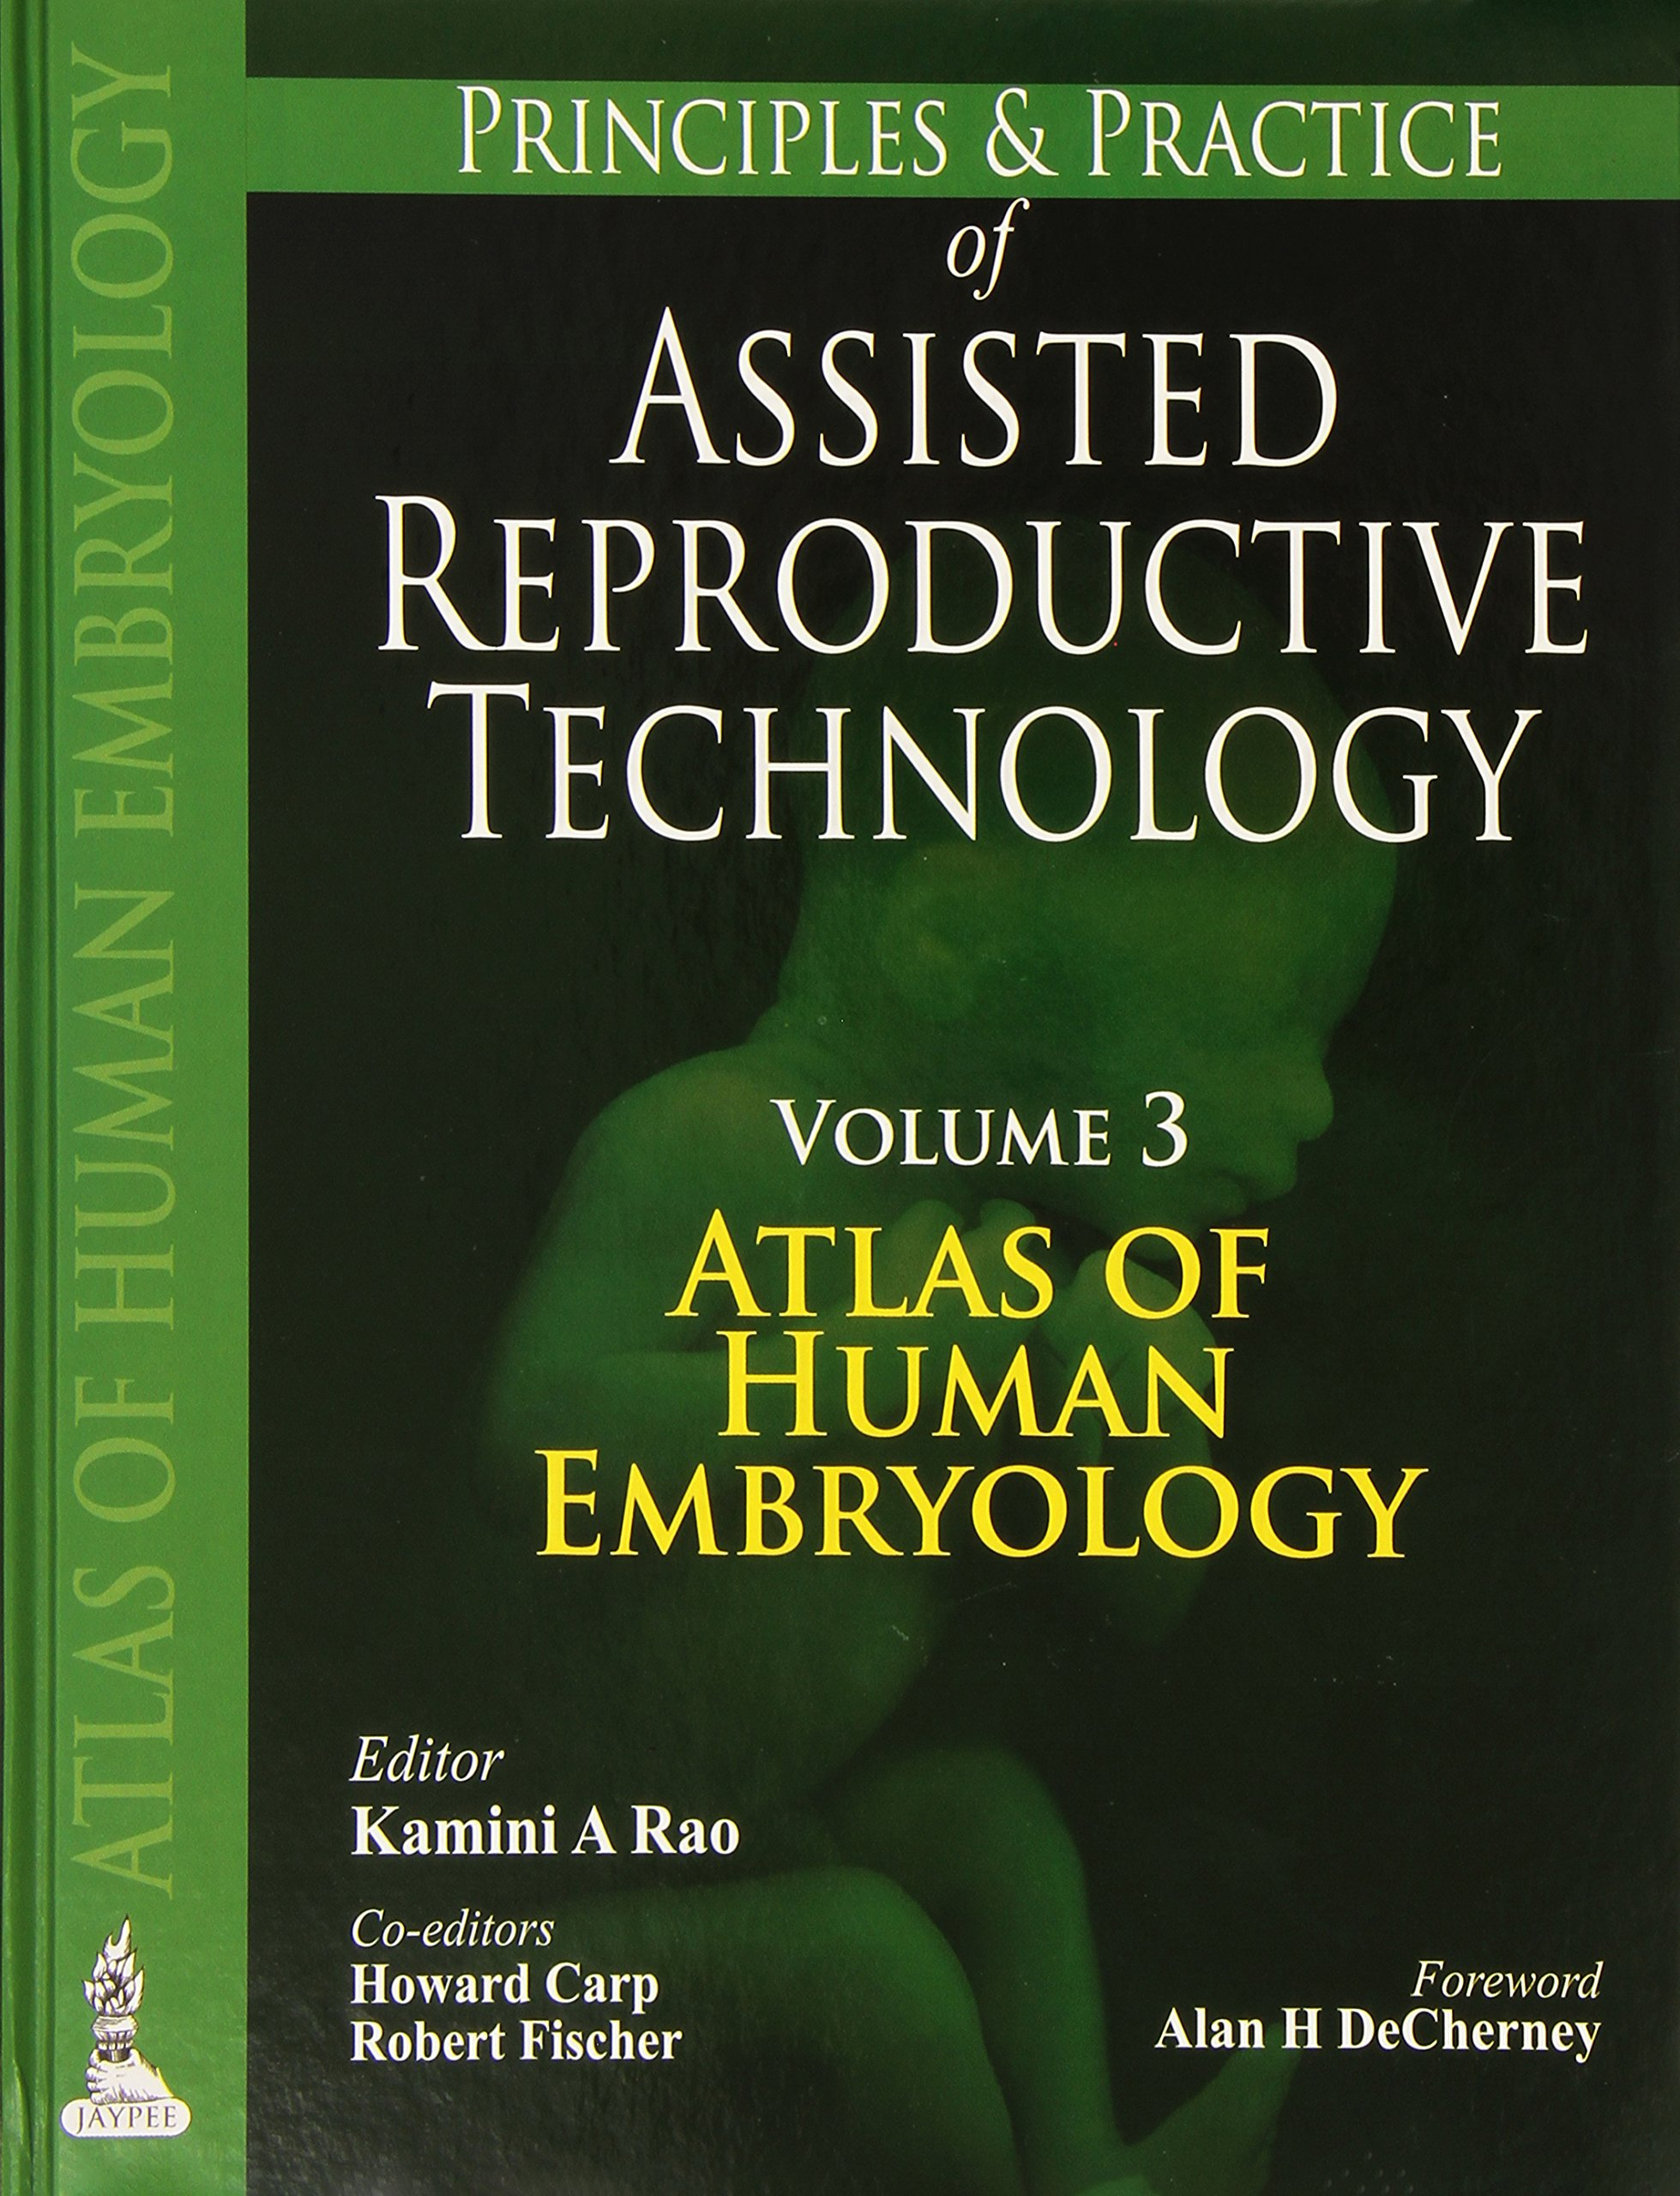 Buy Principles & Practice Of Assisted Reproductive Technology (3Vols) Book  Online at Low Prices in India | Principles & Practice Of Assisted  Reproductive ...